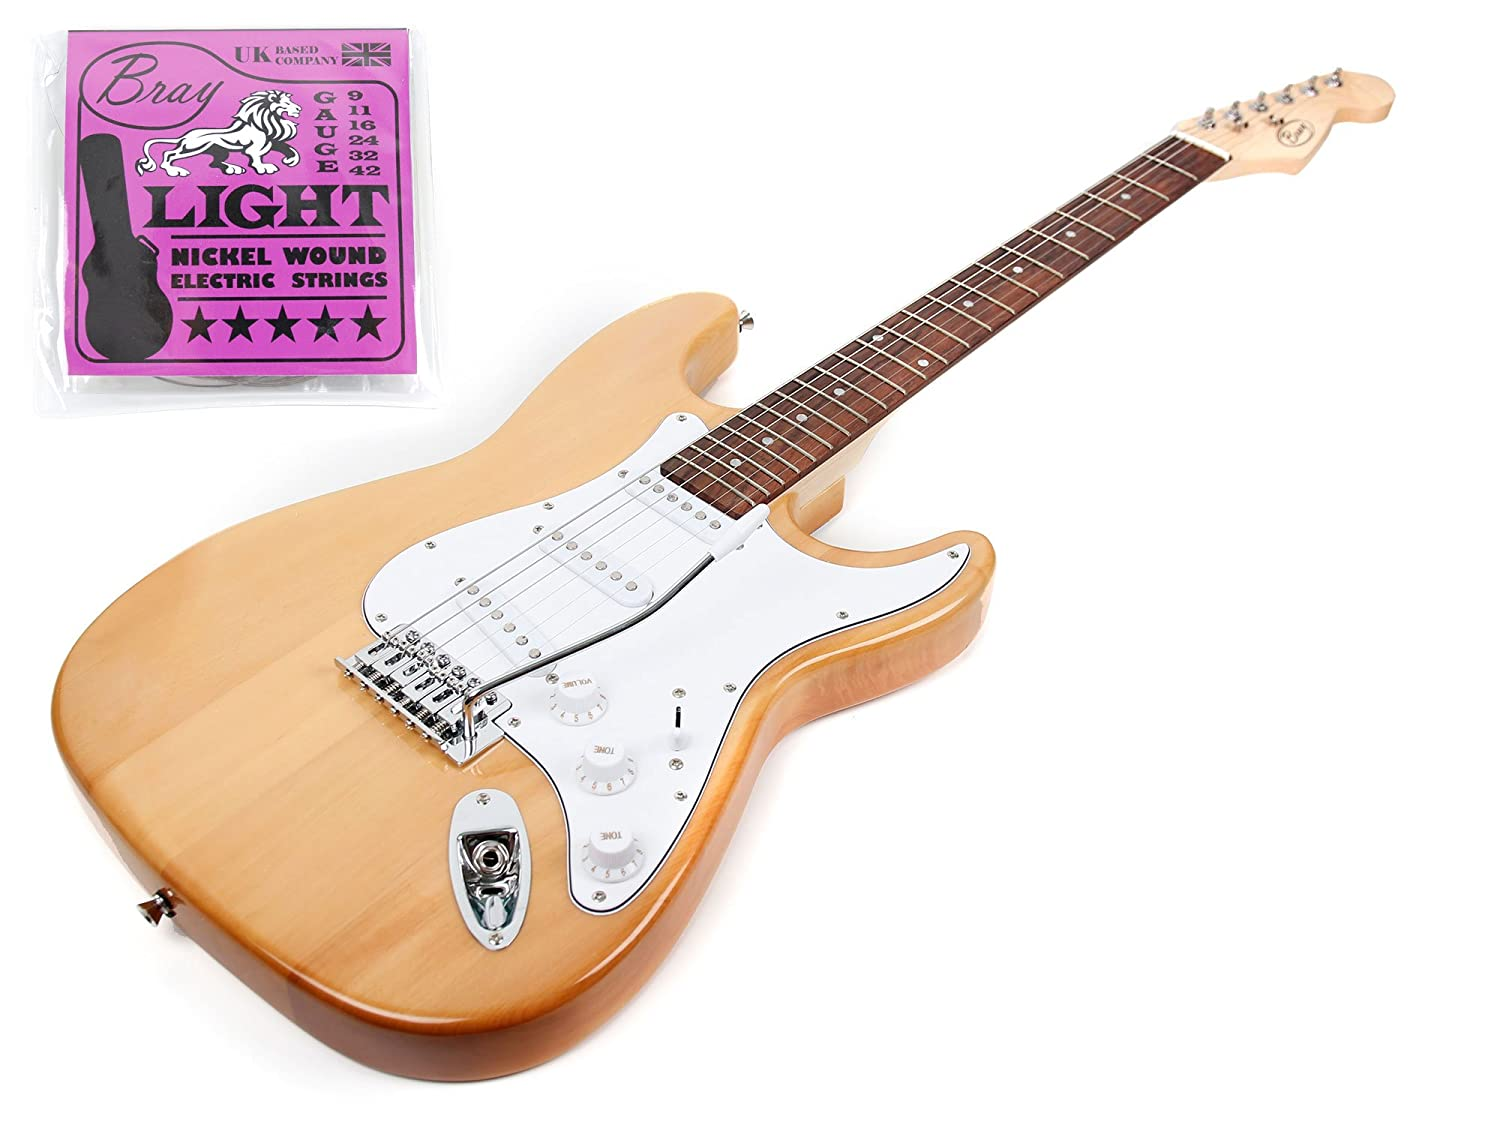 Bray Full Size Wood Finish 6 String Electric Guitar Crafted